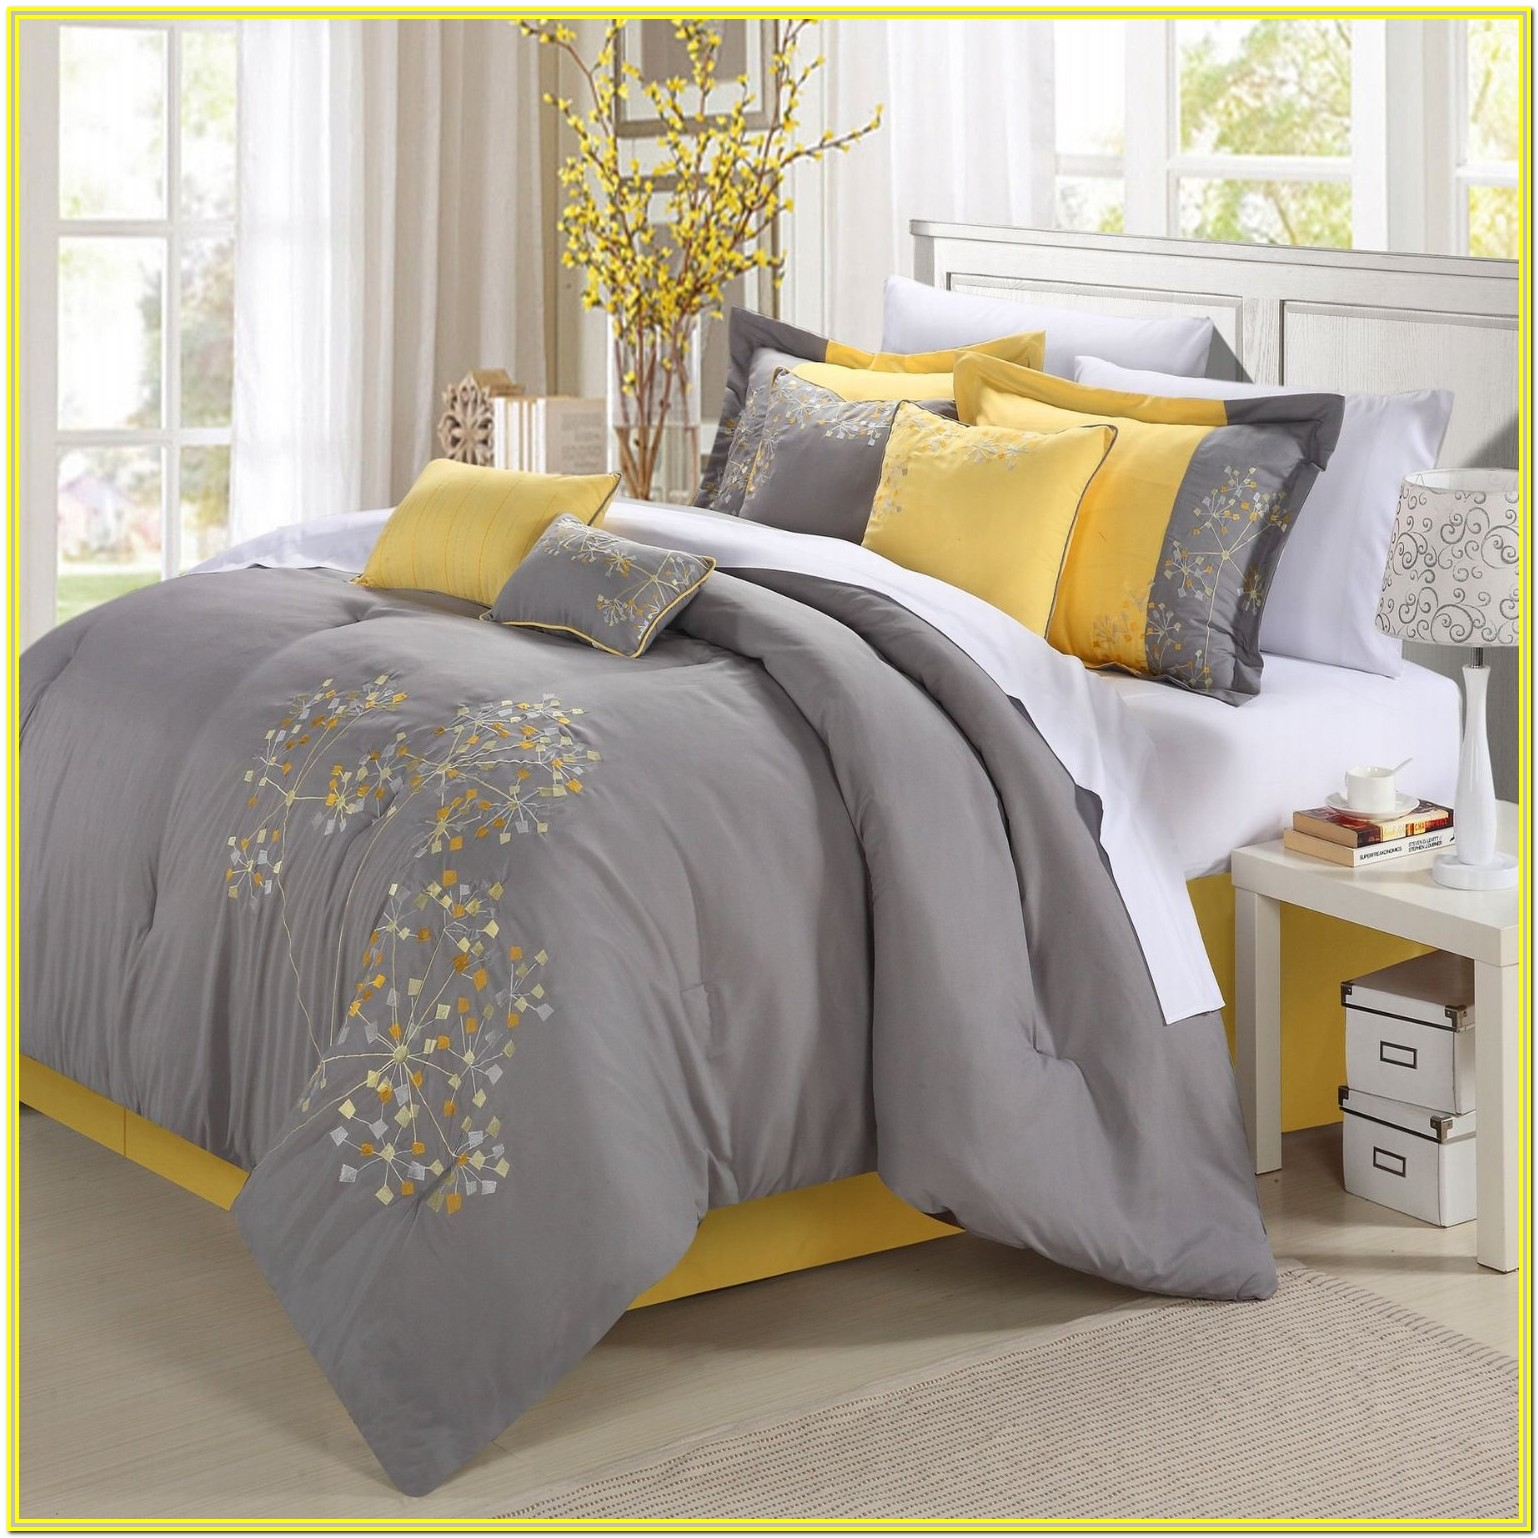 Grey White And Yellow Cot Bedding